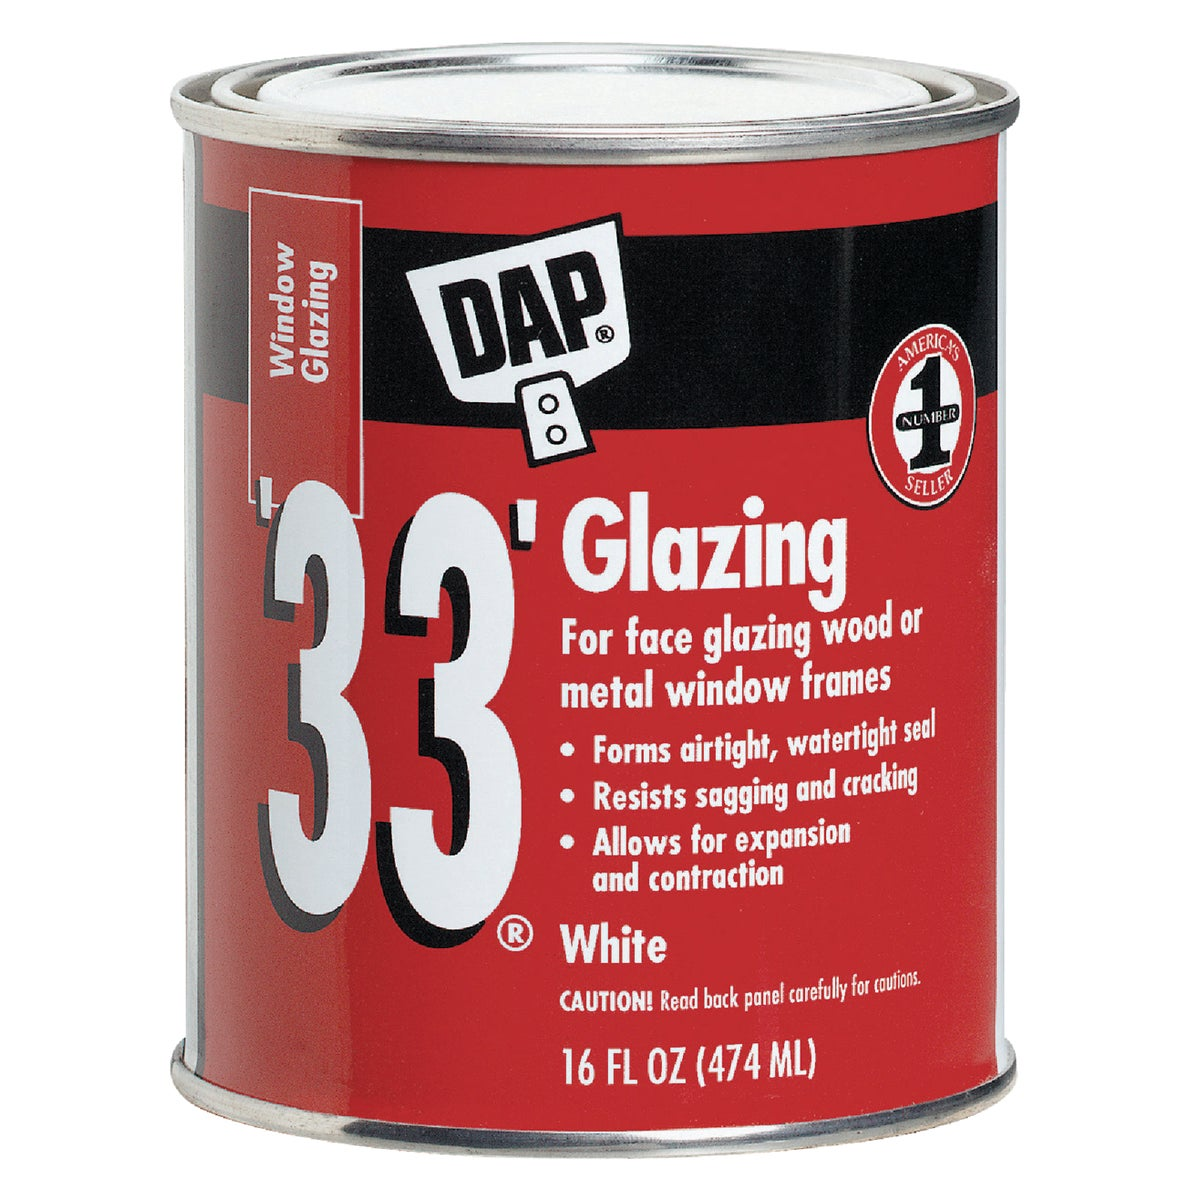 PT WHT GLAZING COMPOUND - 12121 by Dap Inc